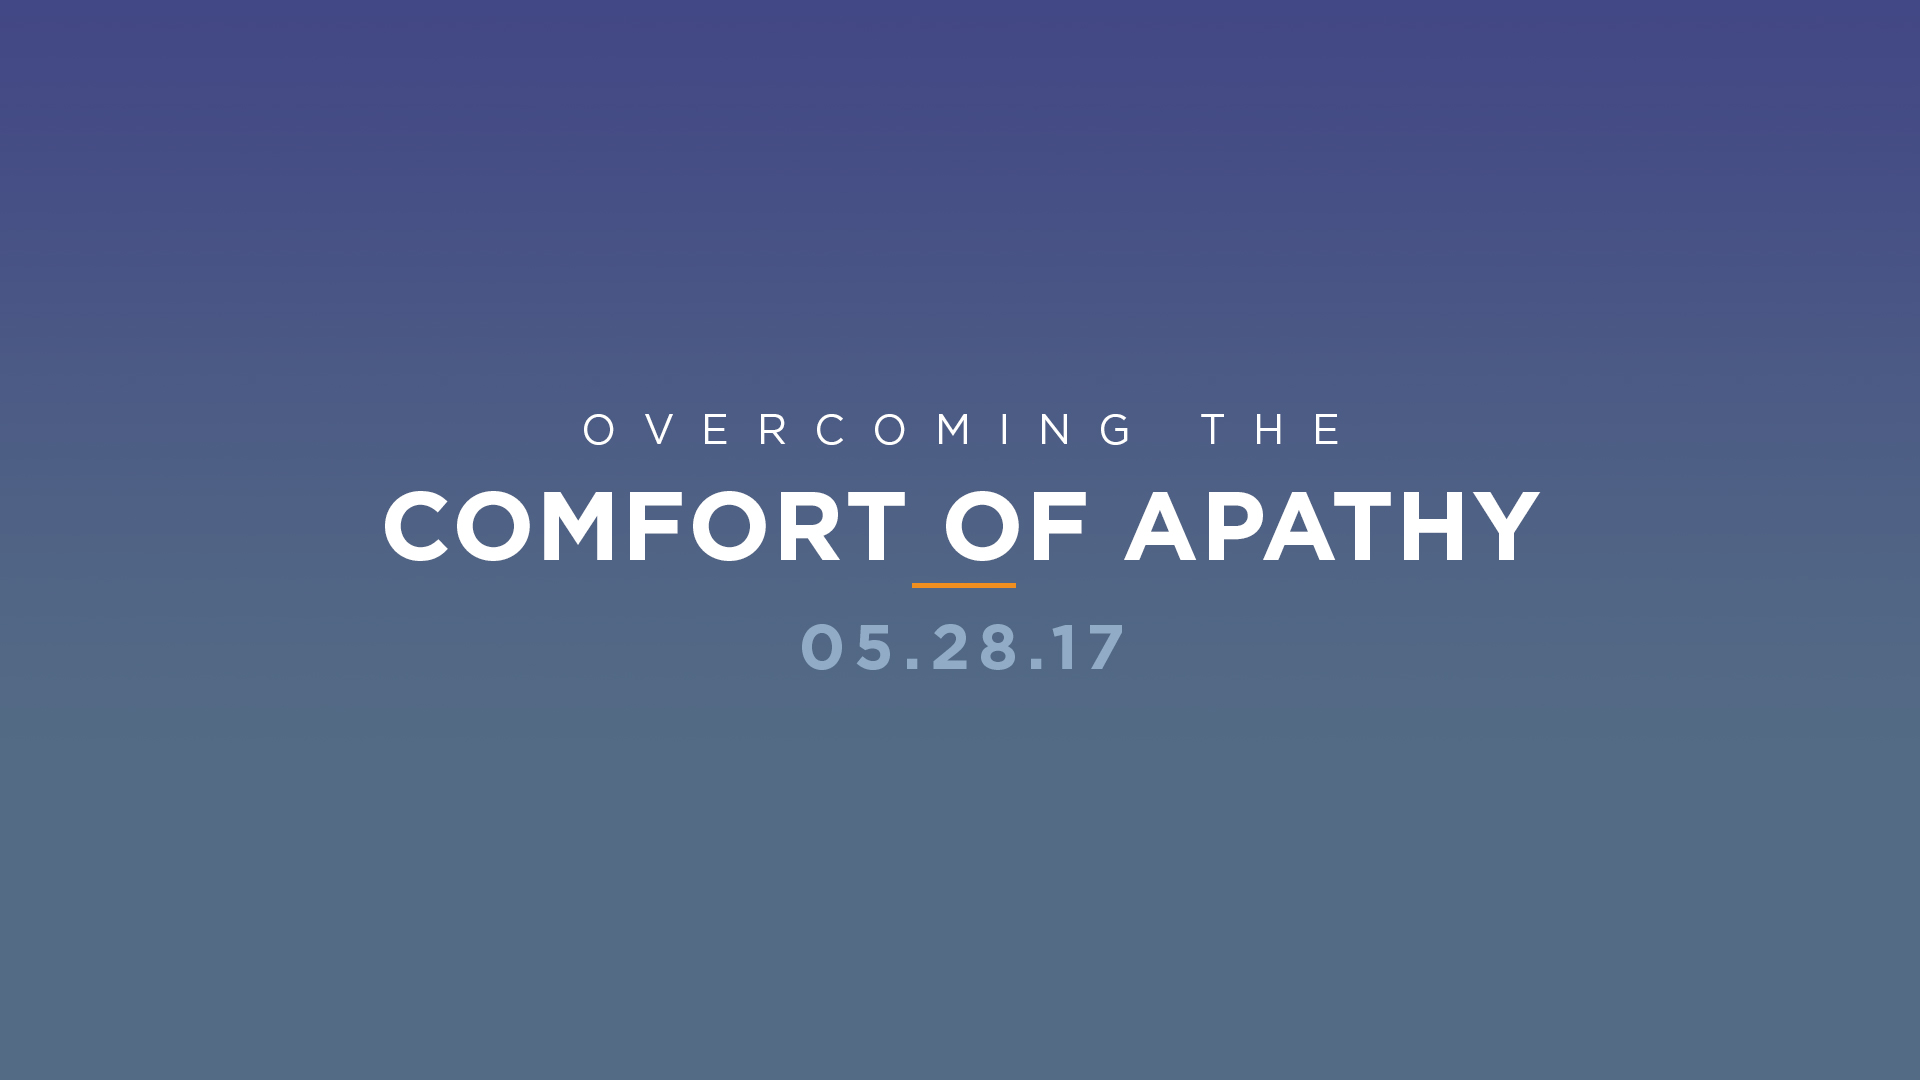 Overcoming the Comfort of Apathy